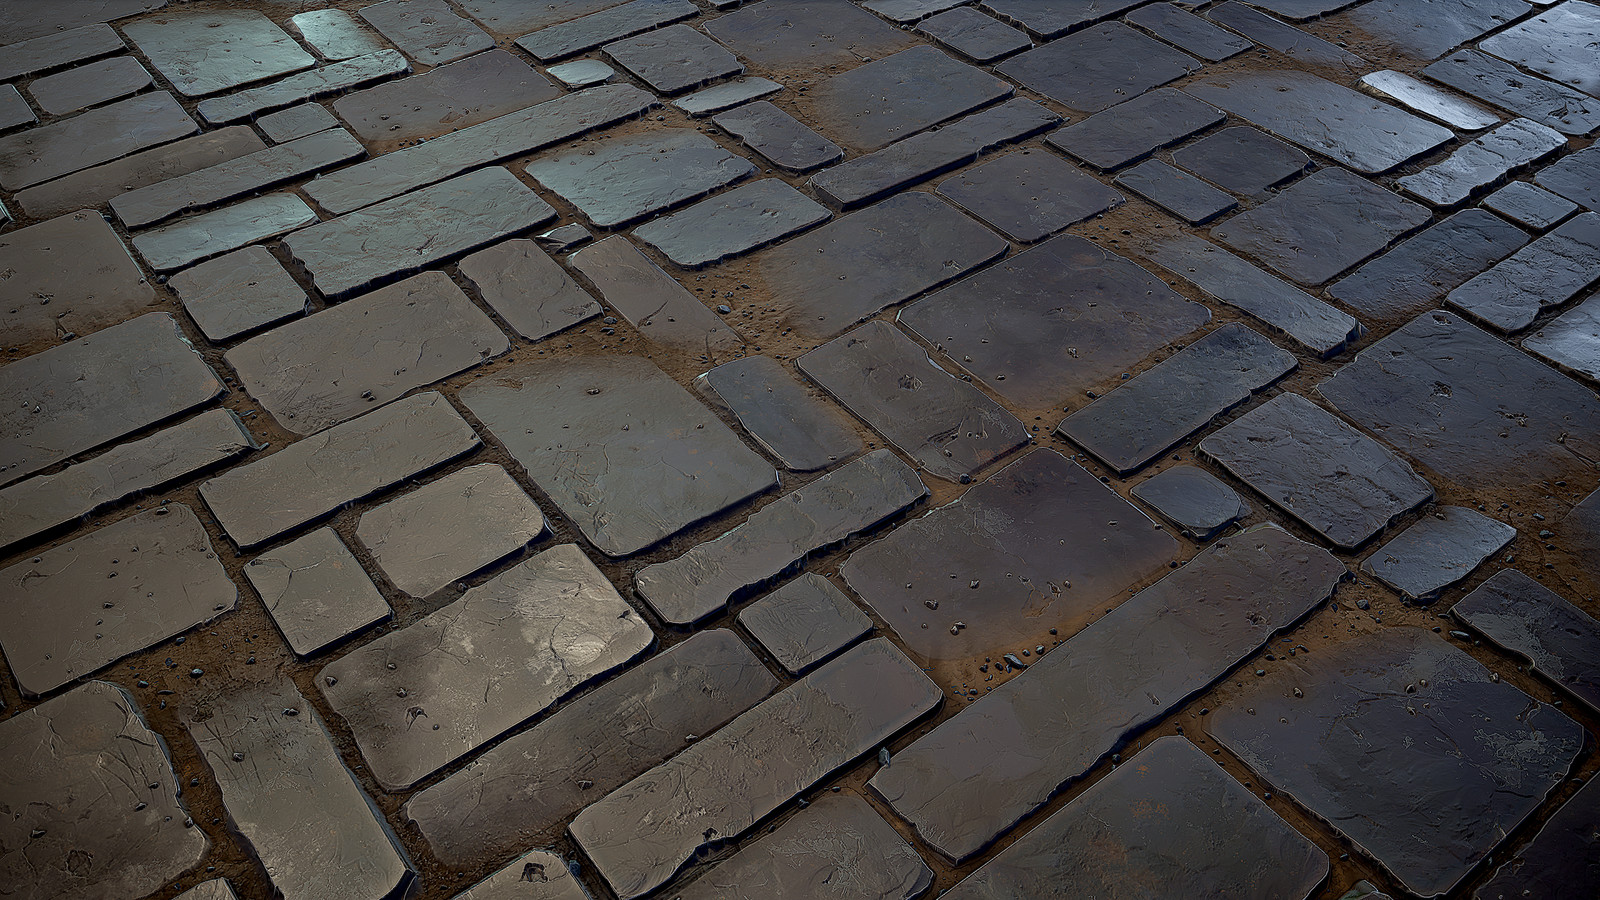 Stone Floor Tiles (Substance Designer only)